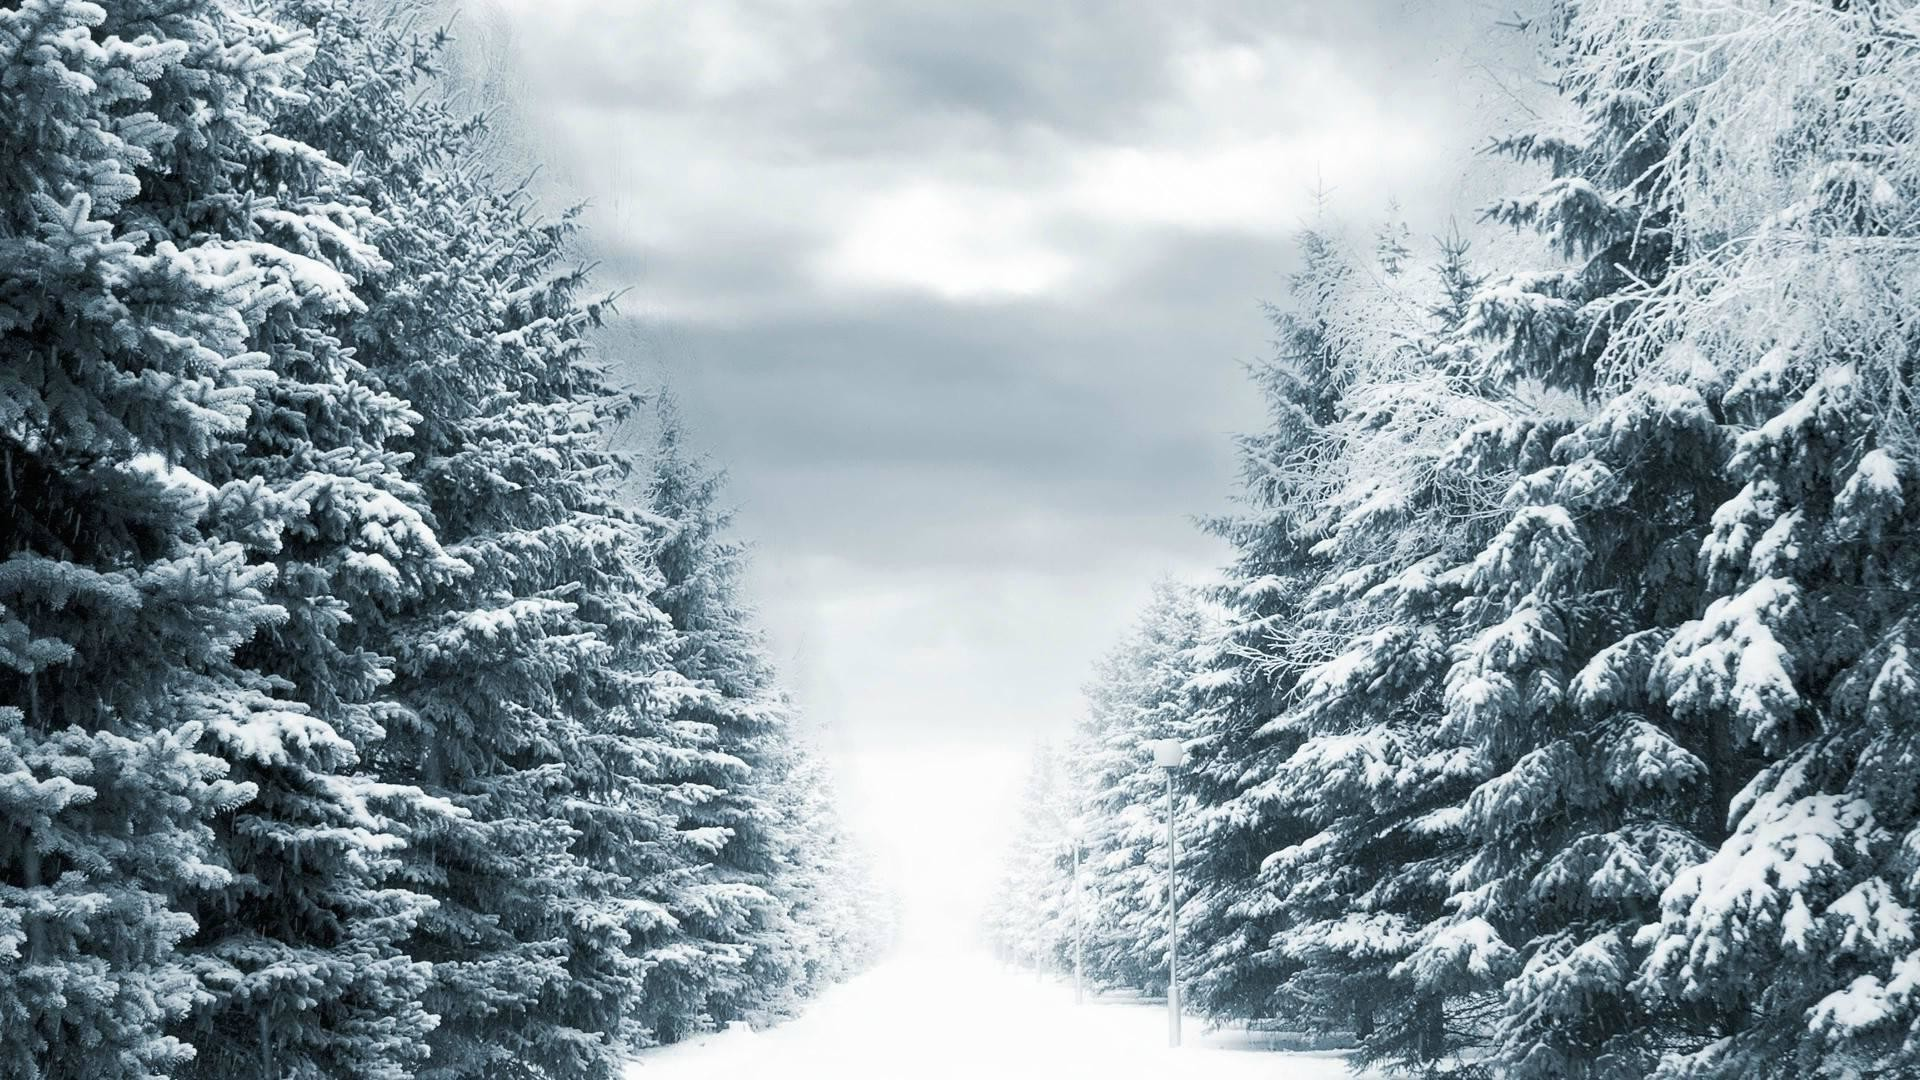 Snowy backgrounds 54 images - Snowy wallpaper ...